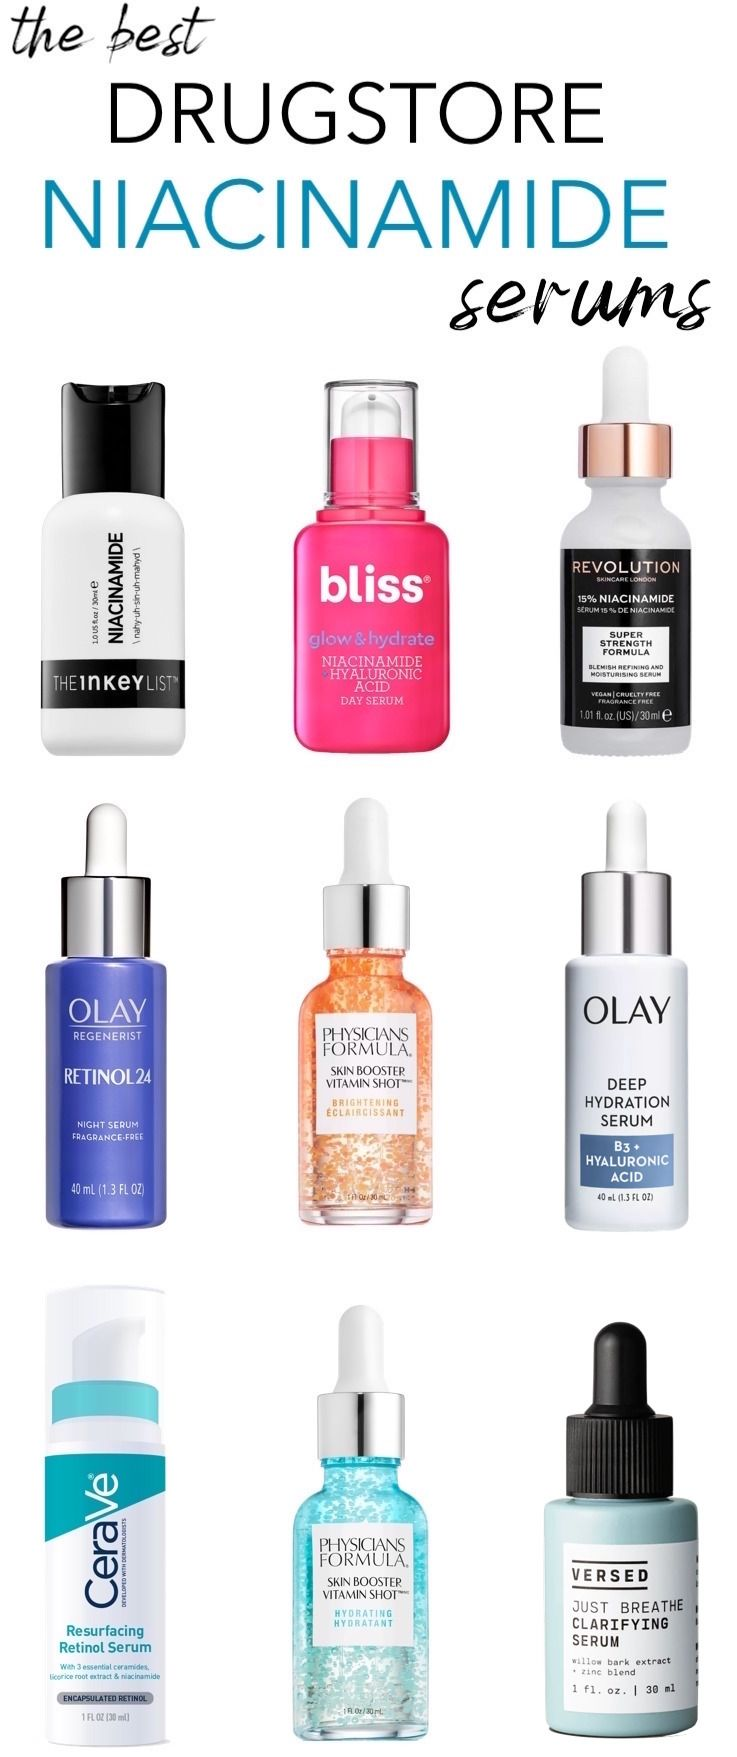 The Best Drugstore Niacinamide Serums To Minimize Large Pores And